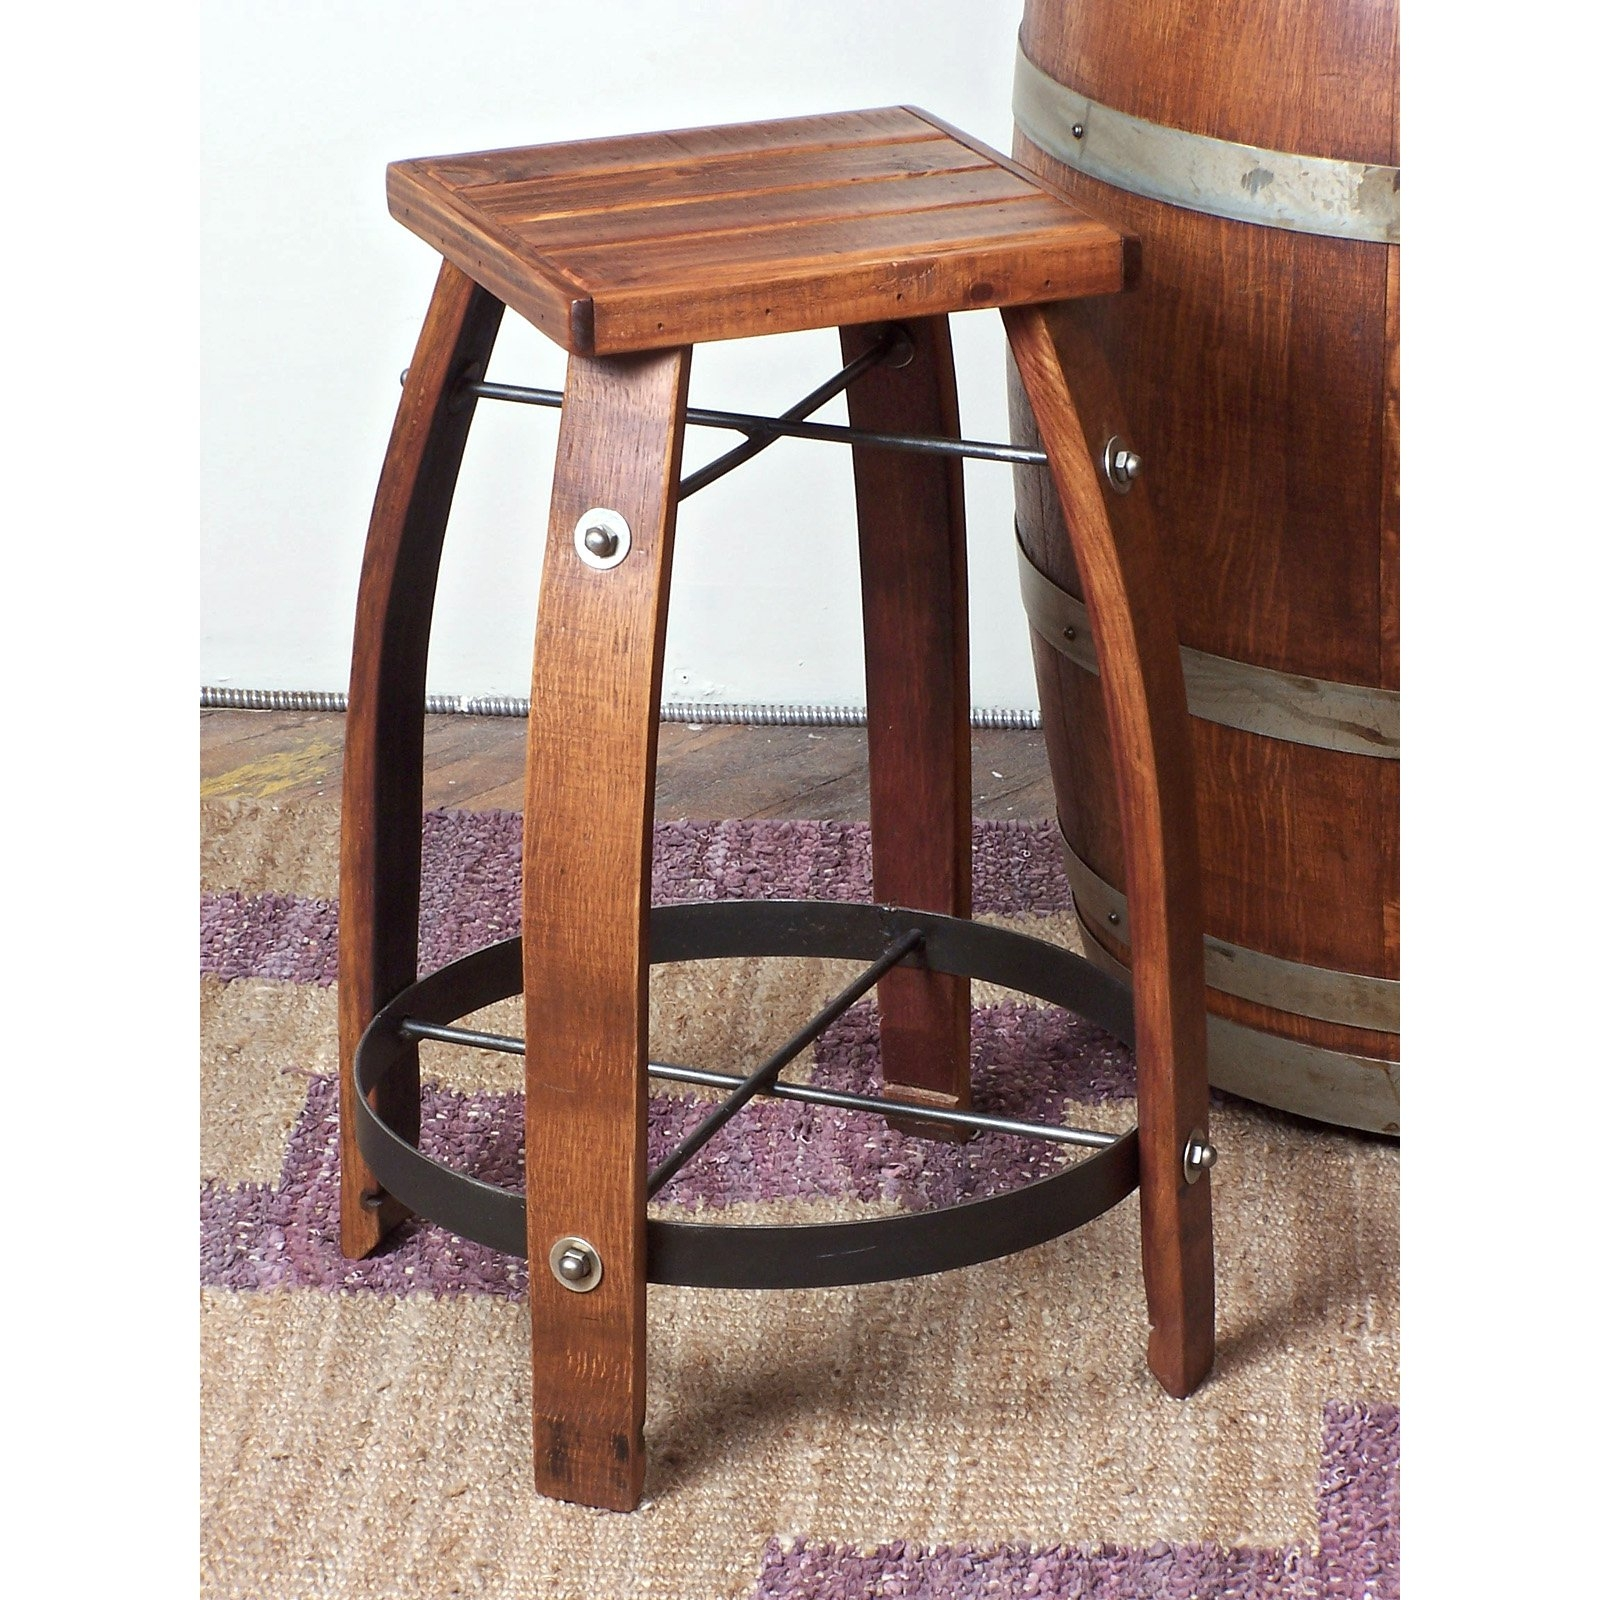 Wine barrel bar plans Ideas Day Designs Reclaimed 24inch Stave Wine Barrel Counter Stool With Wood Seat Visual Hunt Wine Barrel Bar Stools Visual Hunt